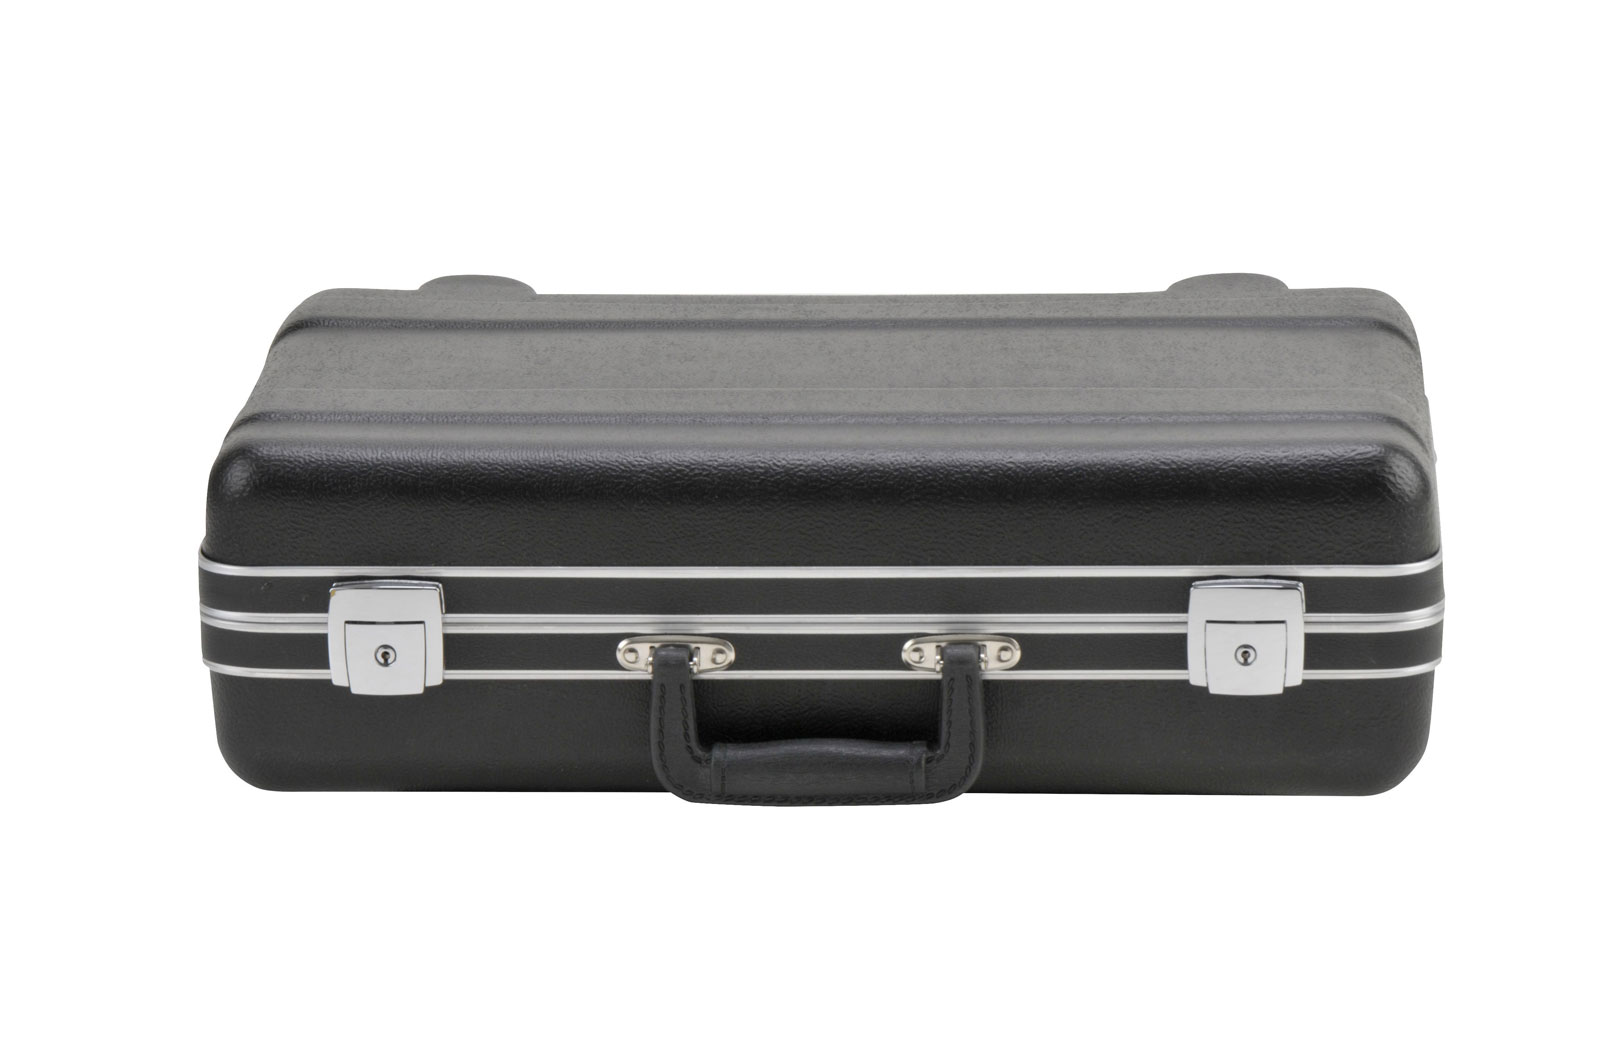 9P1912-01BE - VALISE DE TRANSPORT TYPE BAGAGE